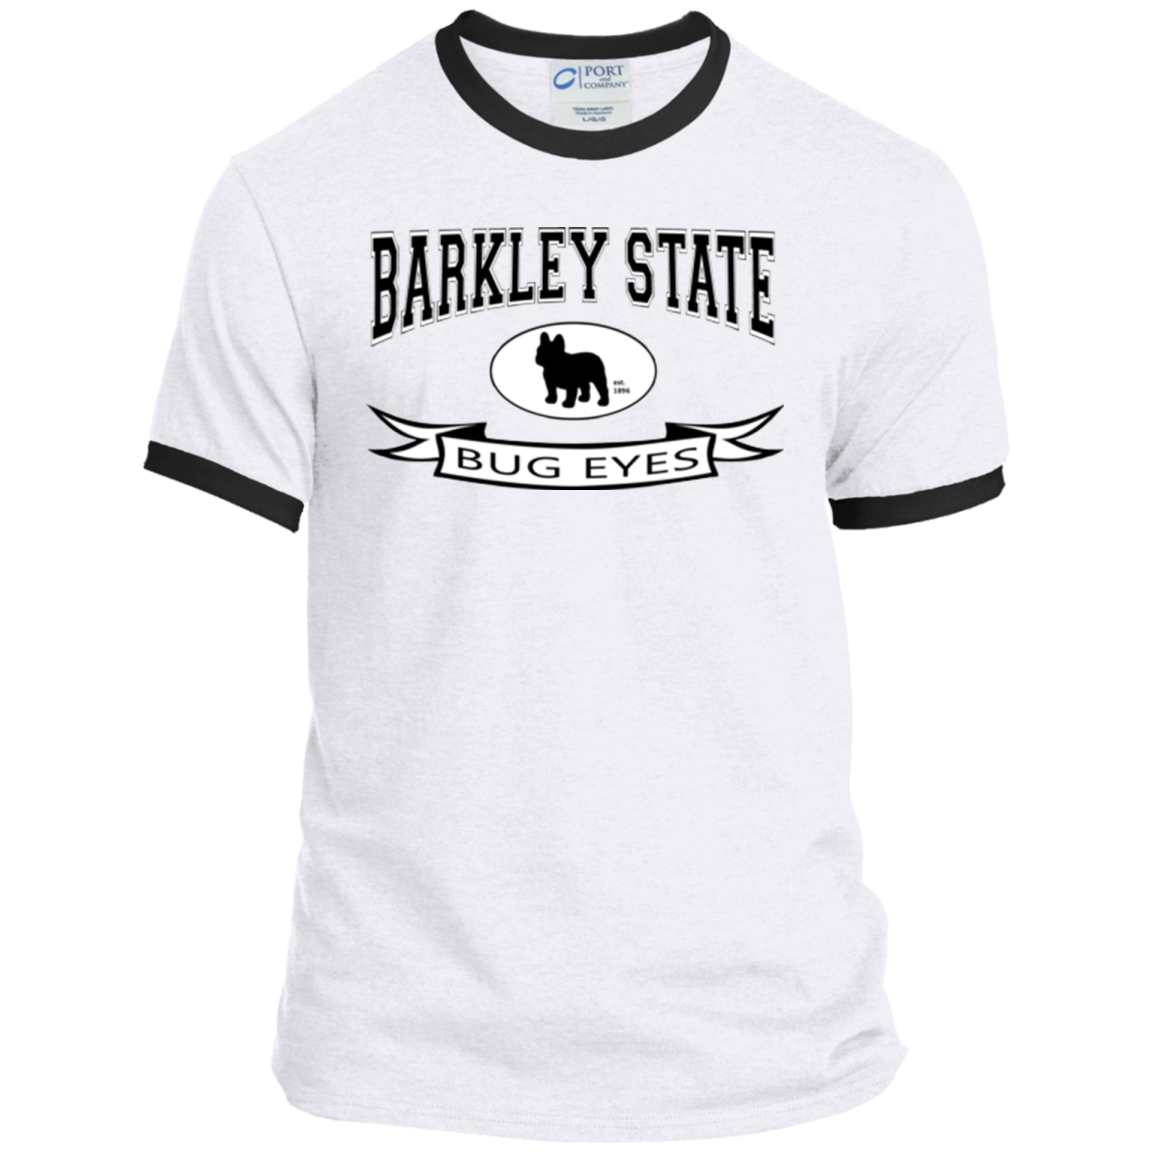 Barkley State Bug Eyes Ringer Tee - Men's T-Shirts I Love Frenchie Bulldogs